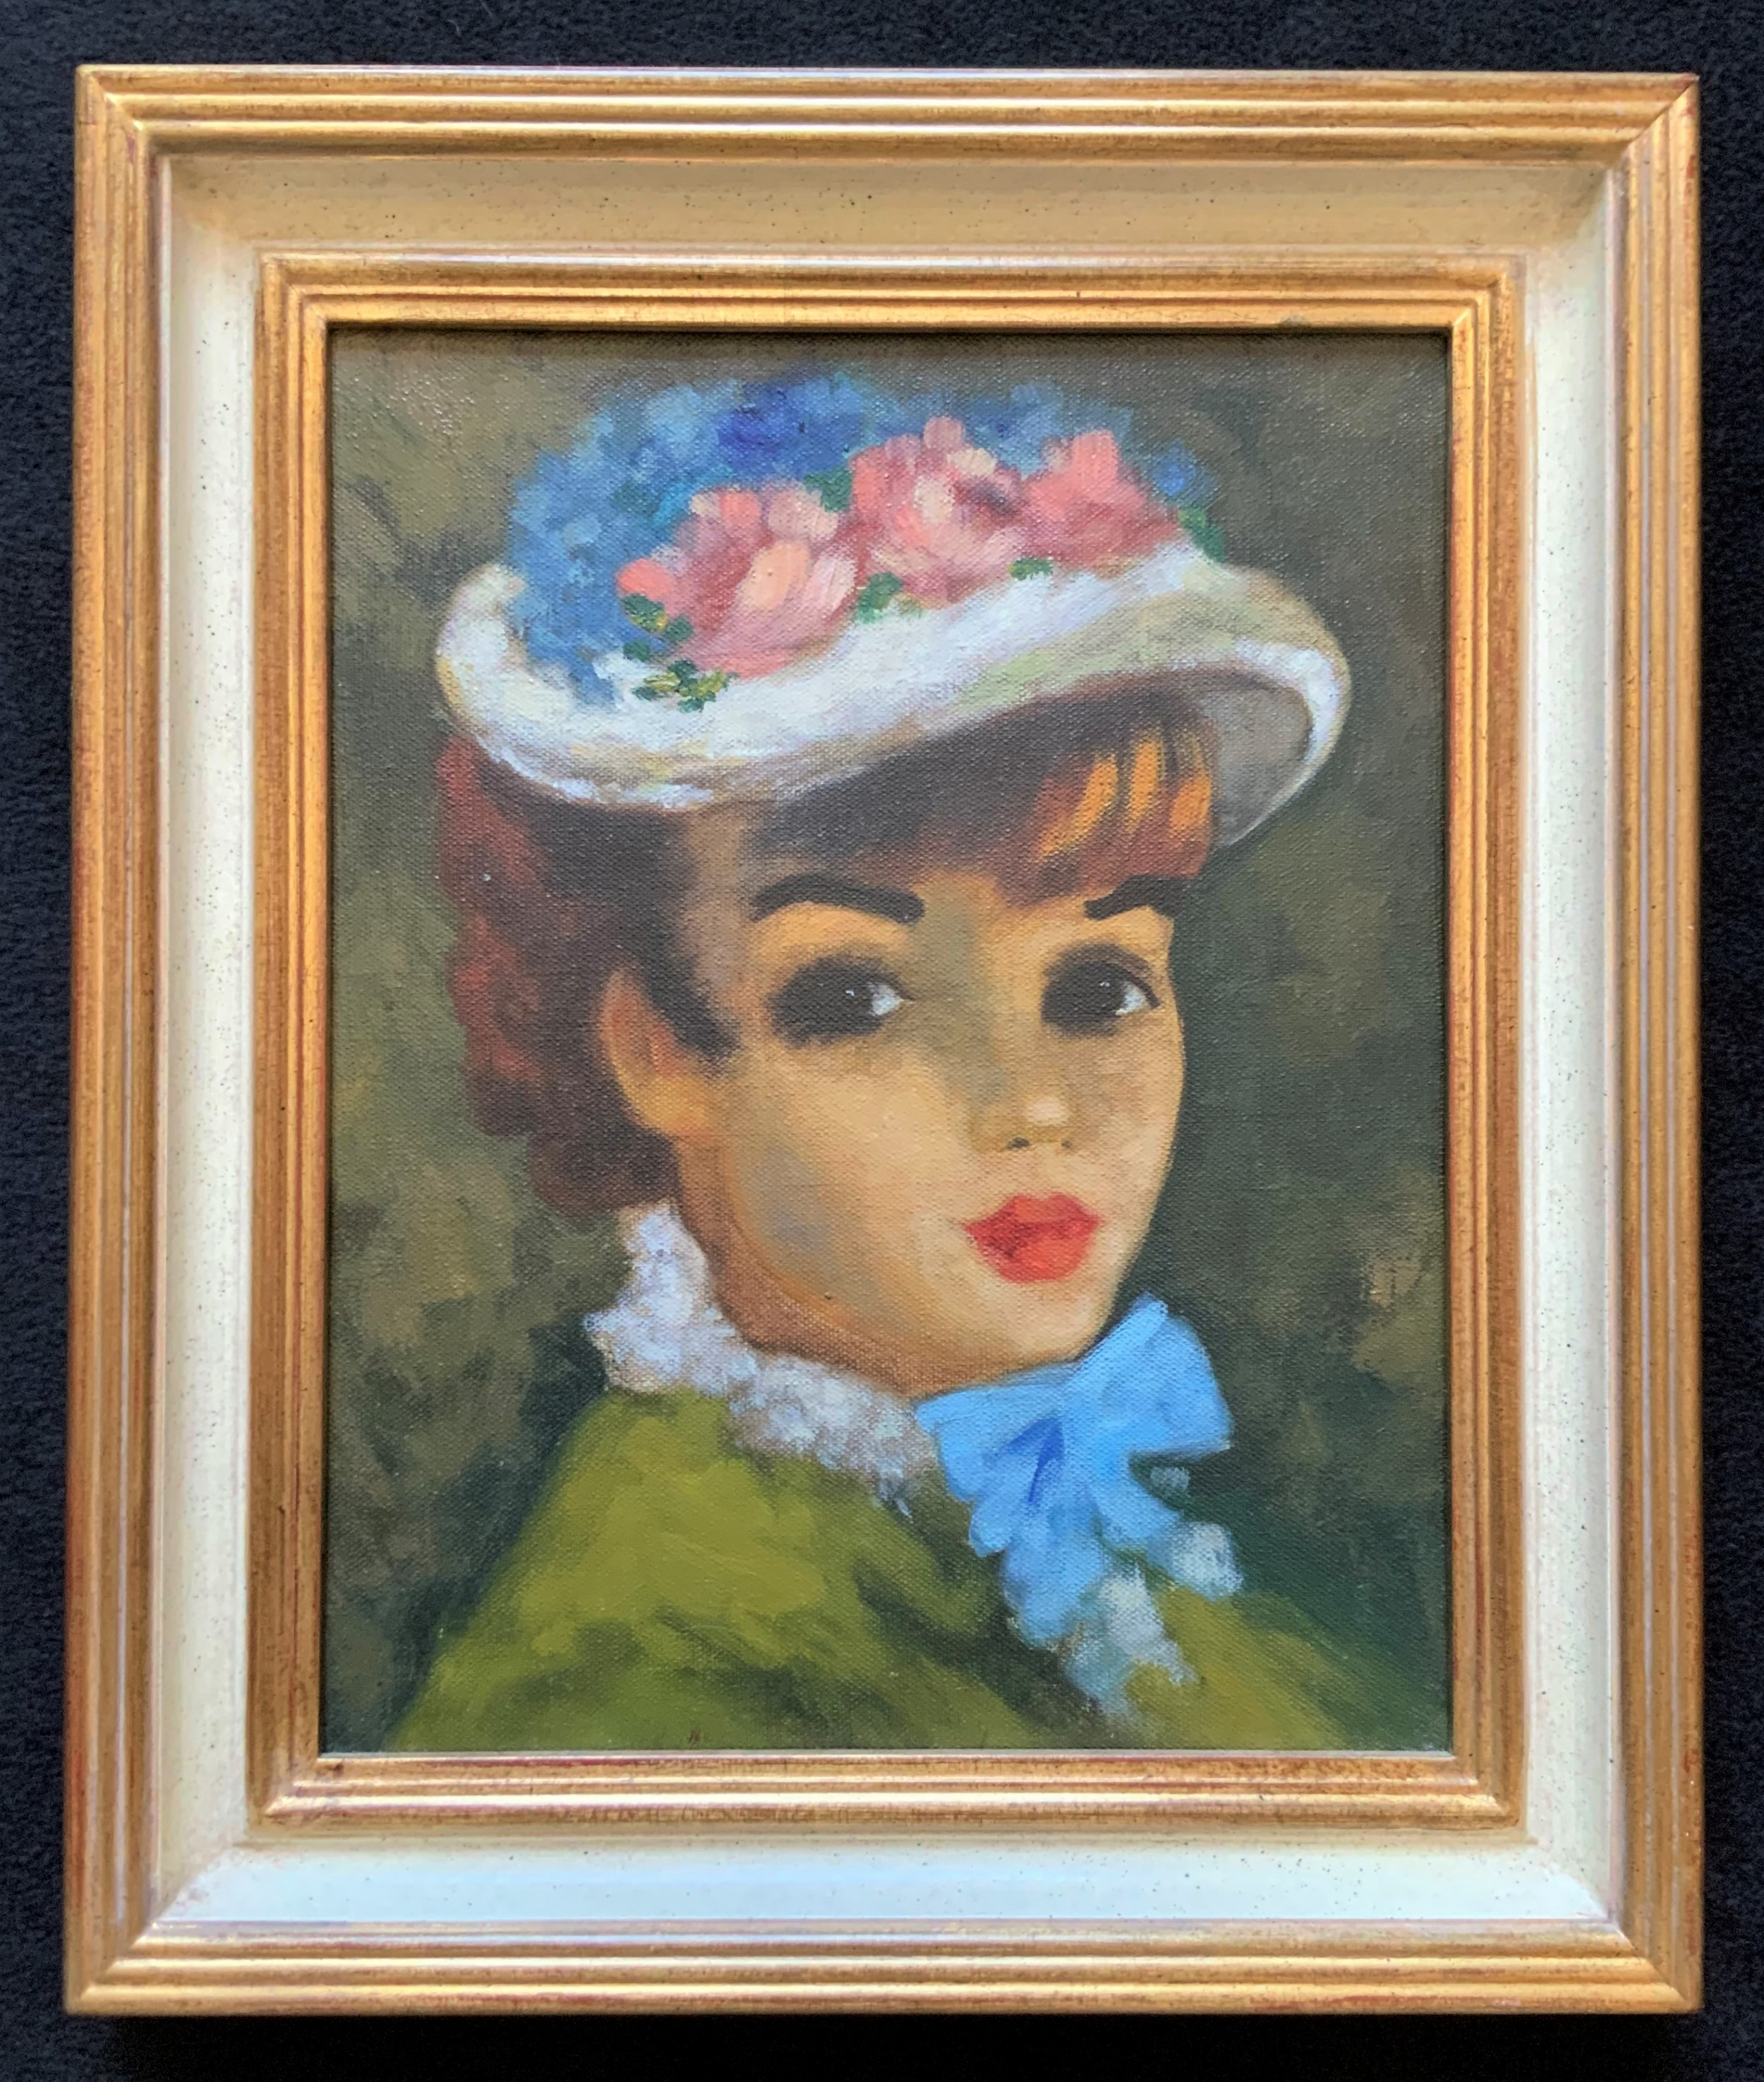 original oil on canvas portrait painting of a pretty young girl mid 20thc